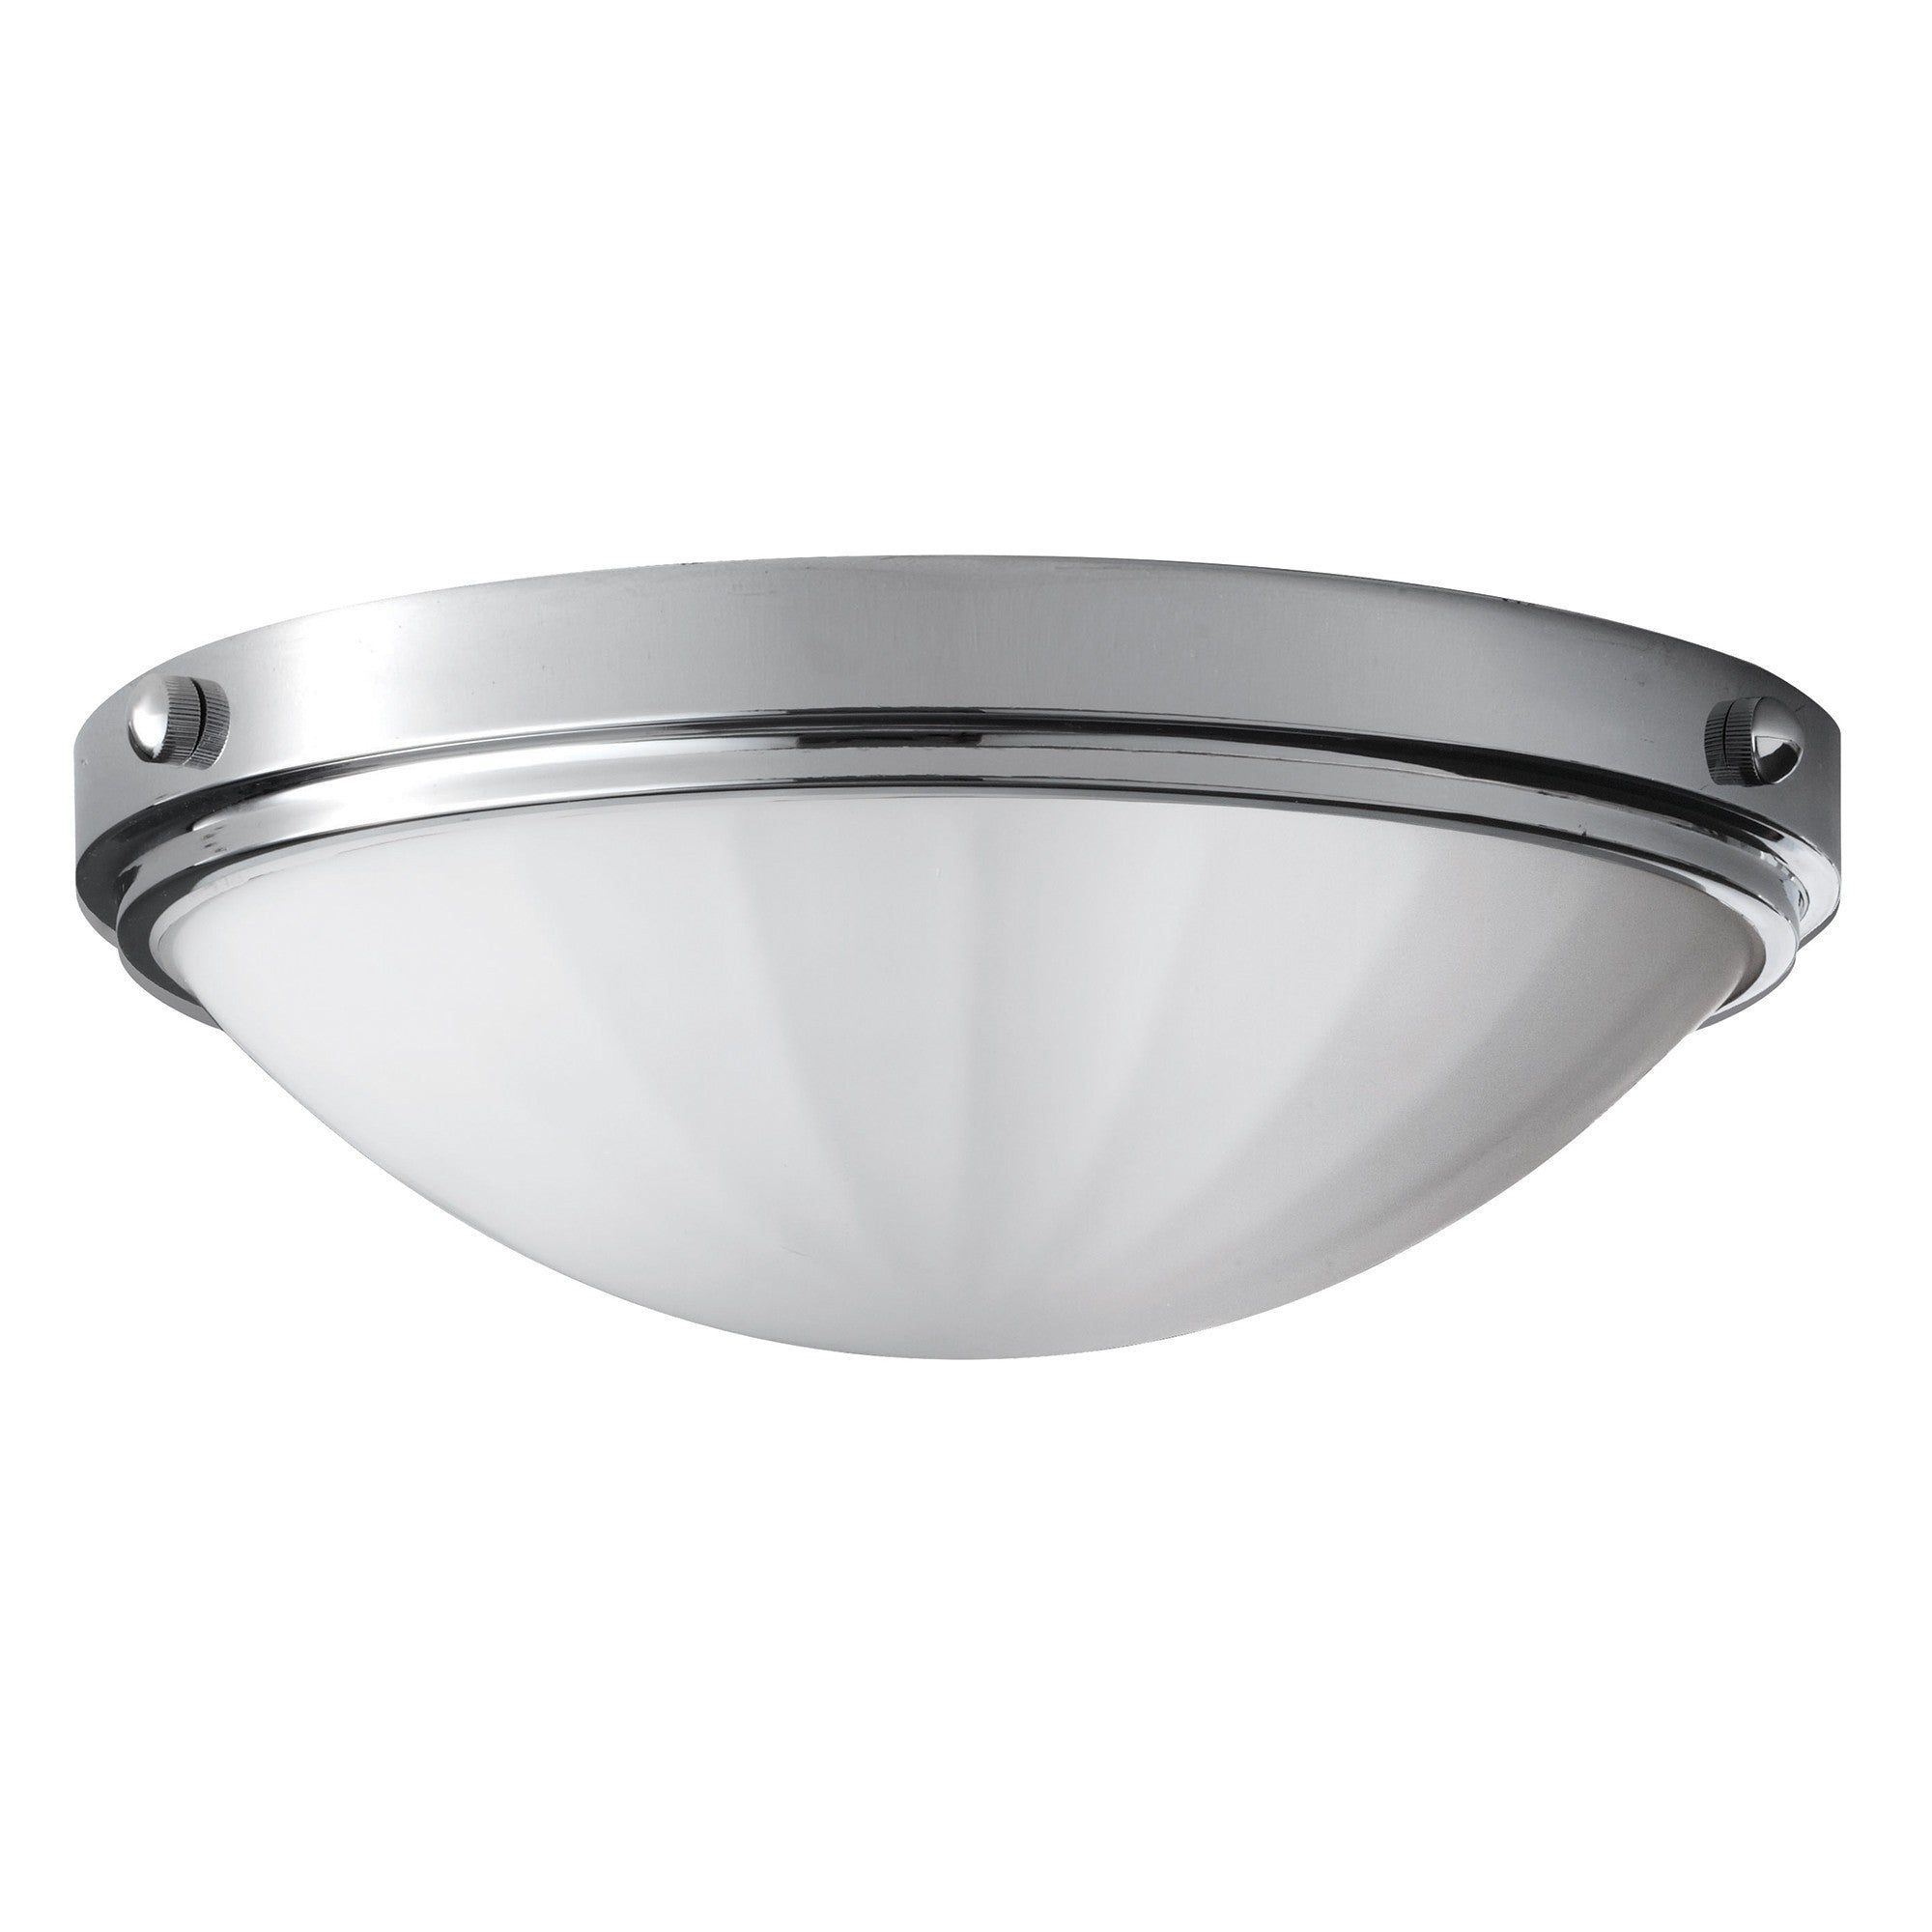 Feiss perry flush ceiling light london lighting feiss perry flush ceiling light london lighting 1 aloadofball Image collections